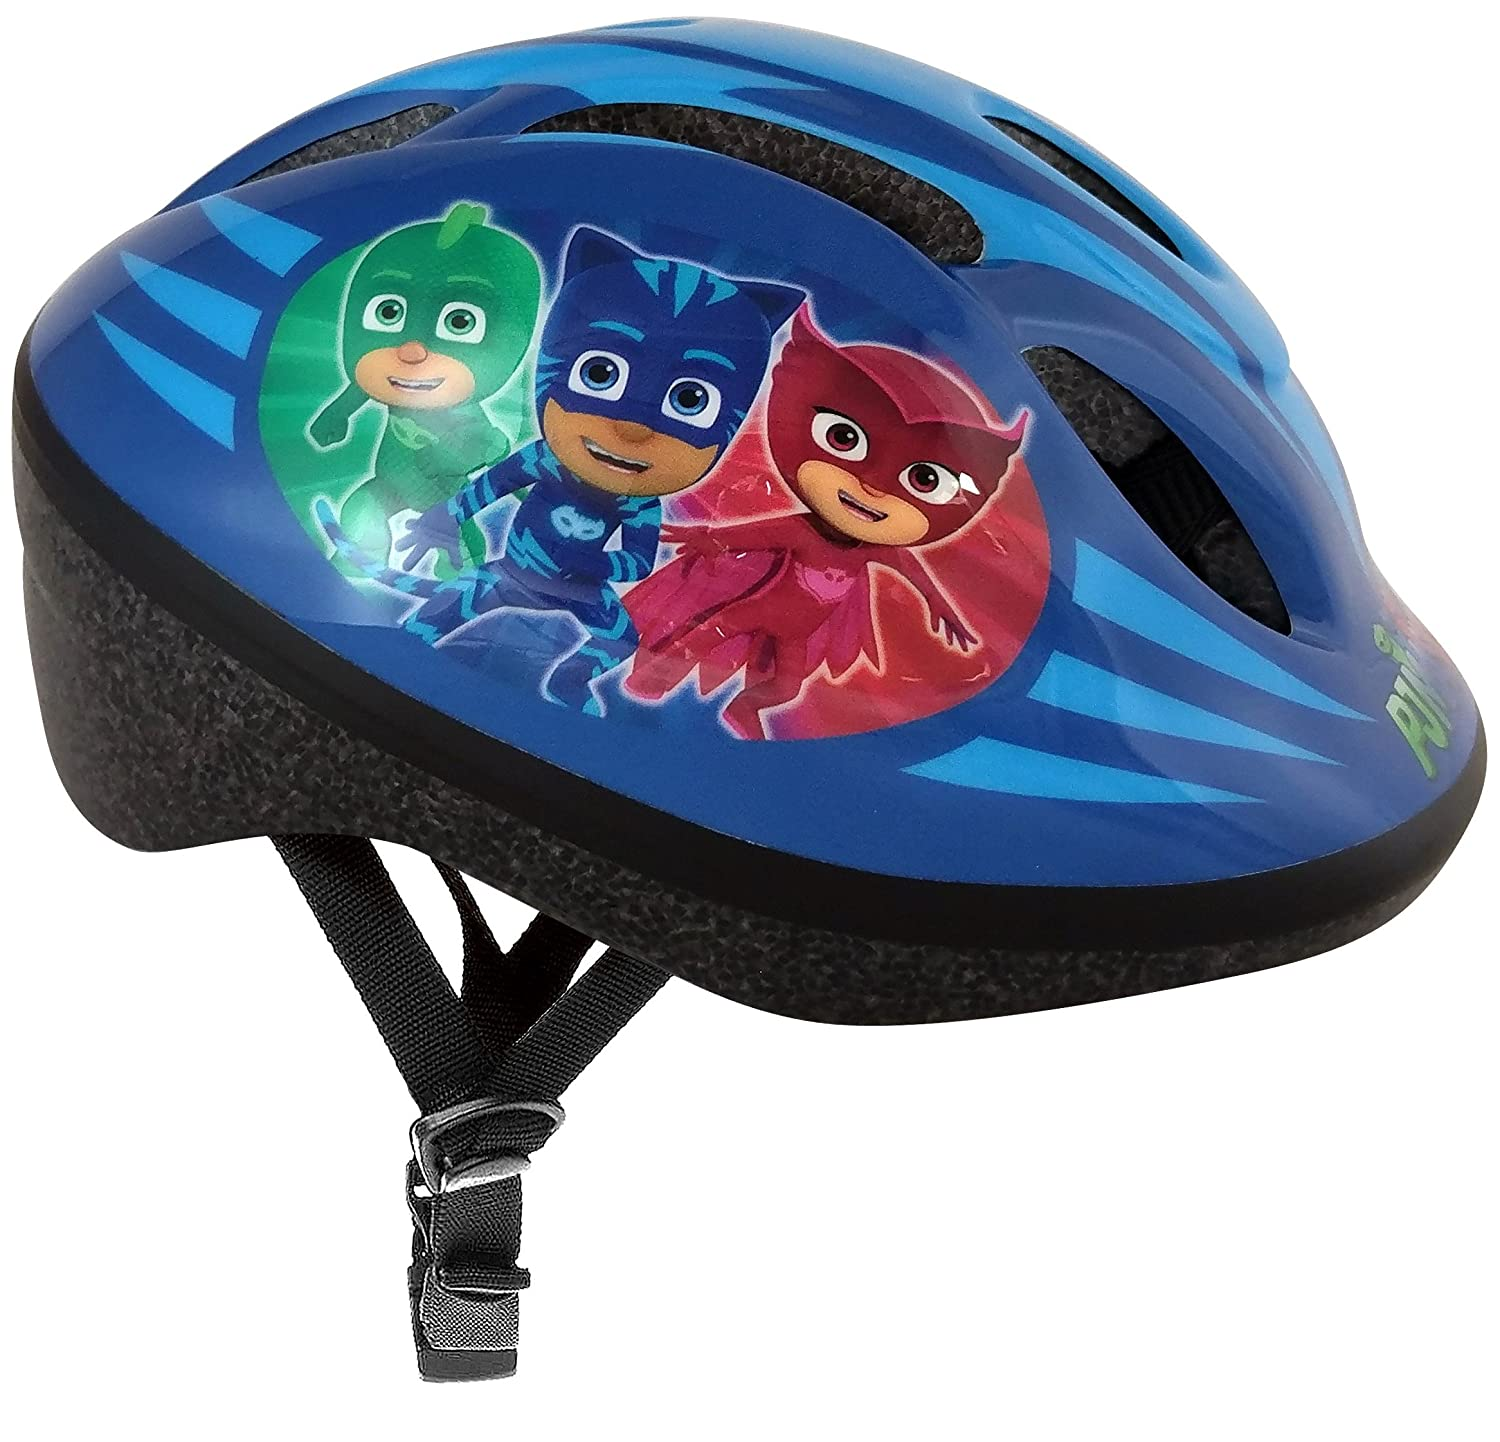 Stamp SAS- Combo PJ Masks (Helm + Elbow & Knee Pads), Color ...